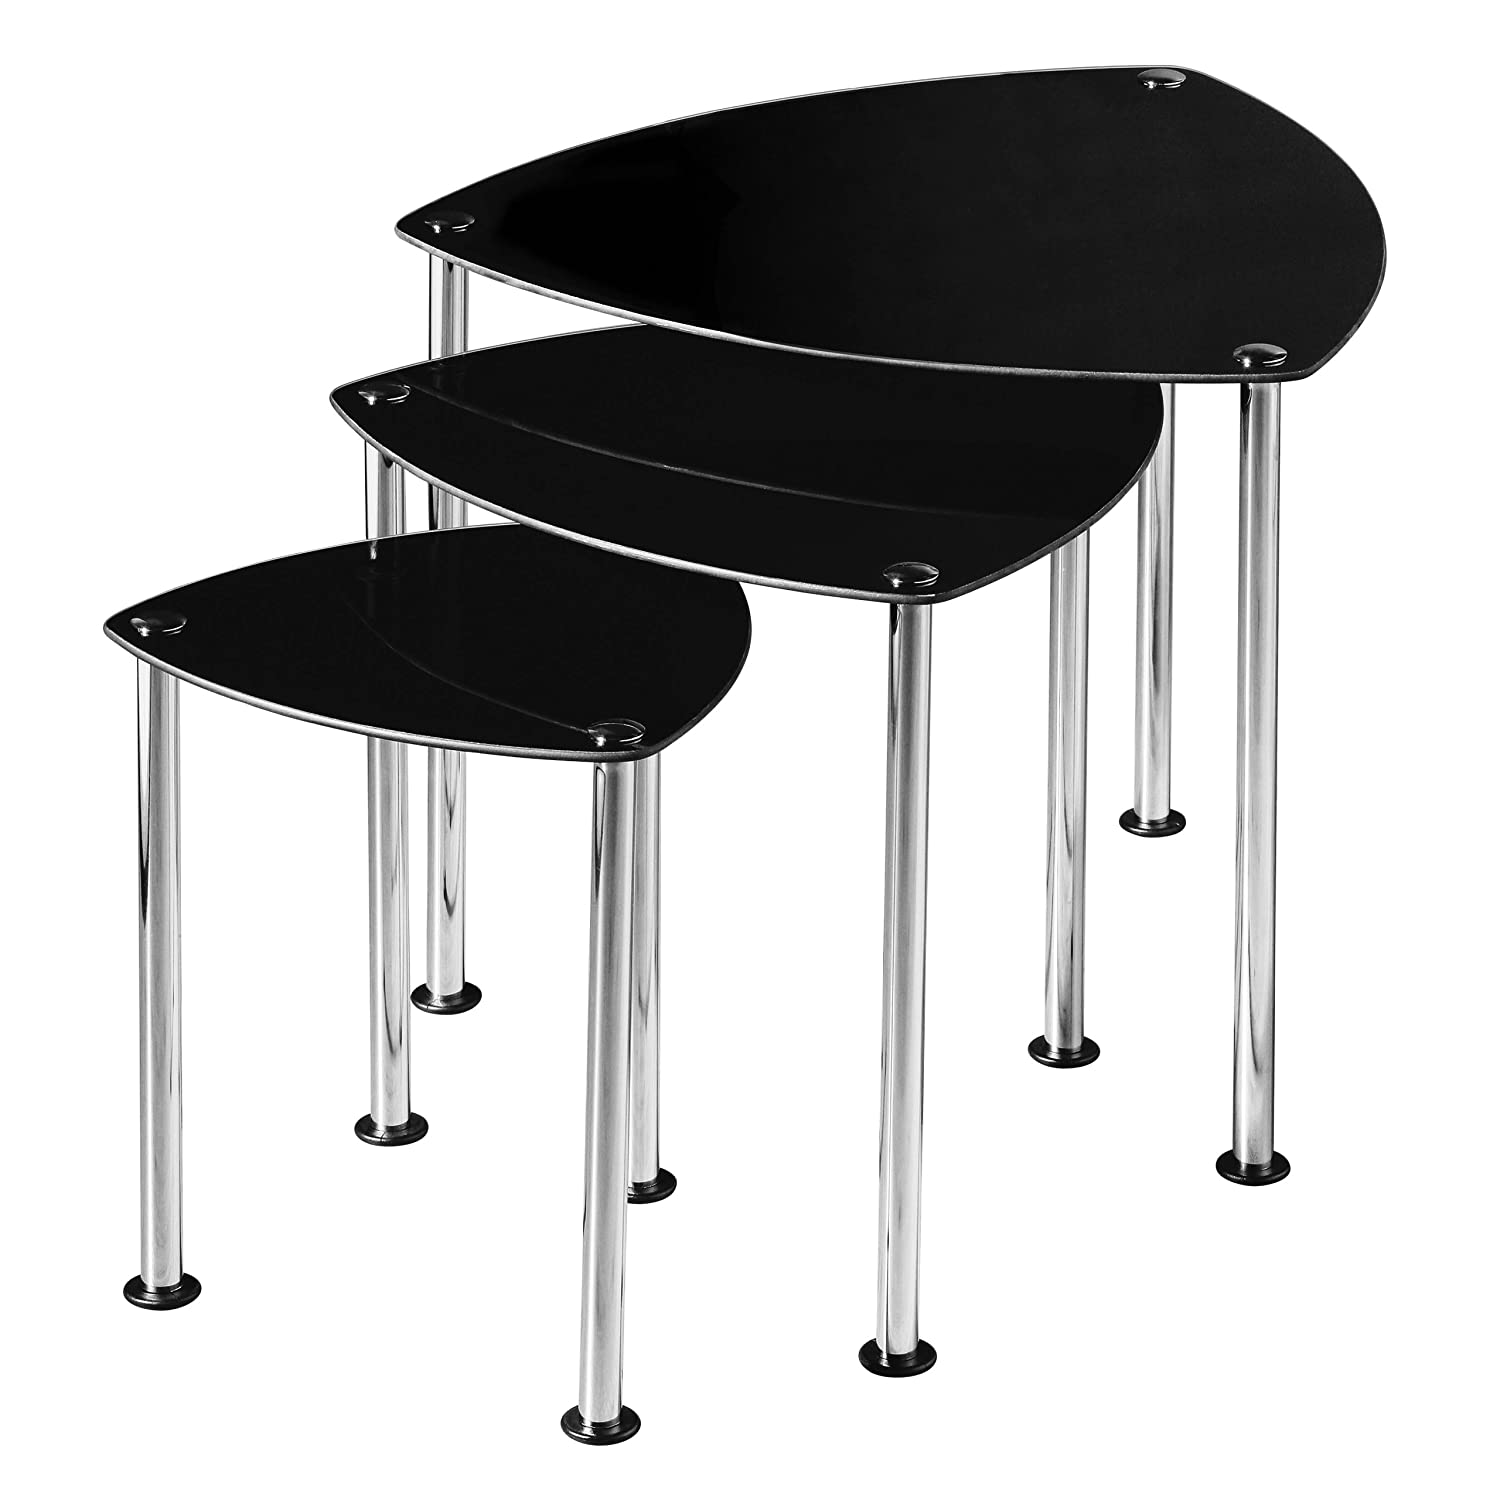 Premier Housewares Nest of 3 Tables with Black Glass Top and